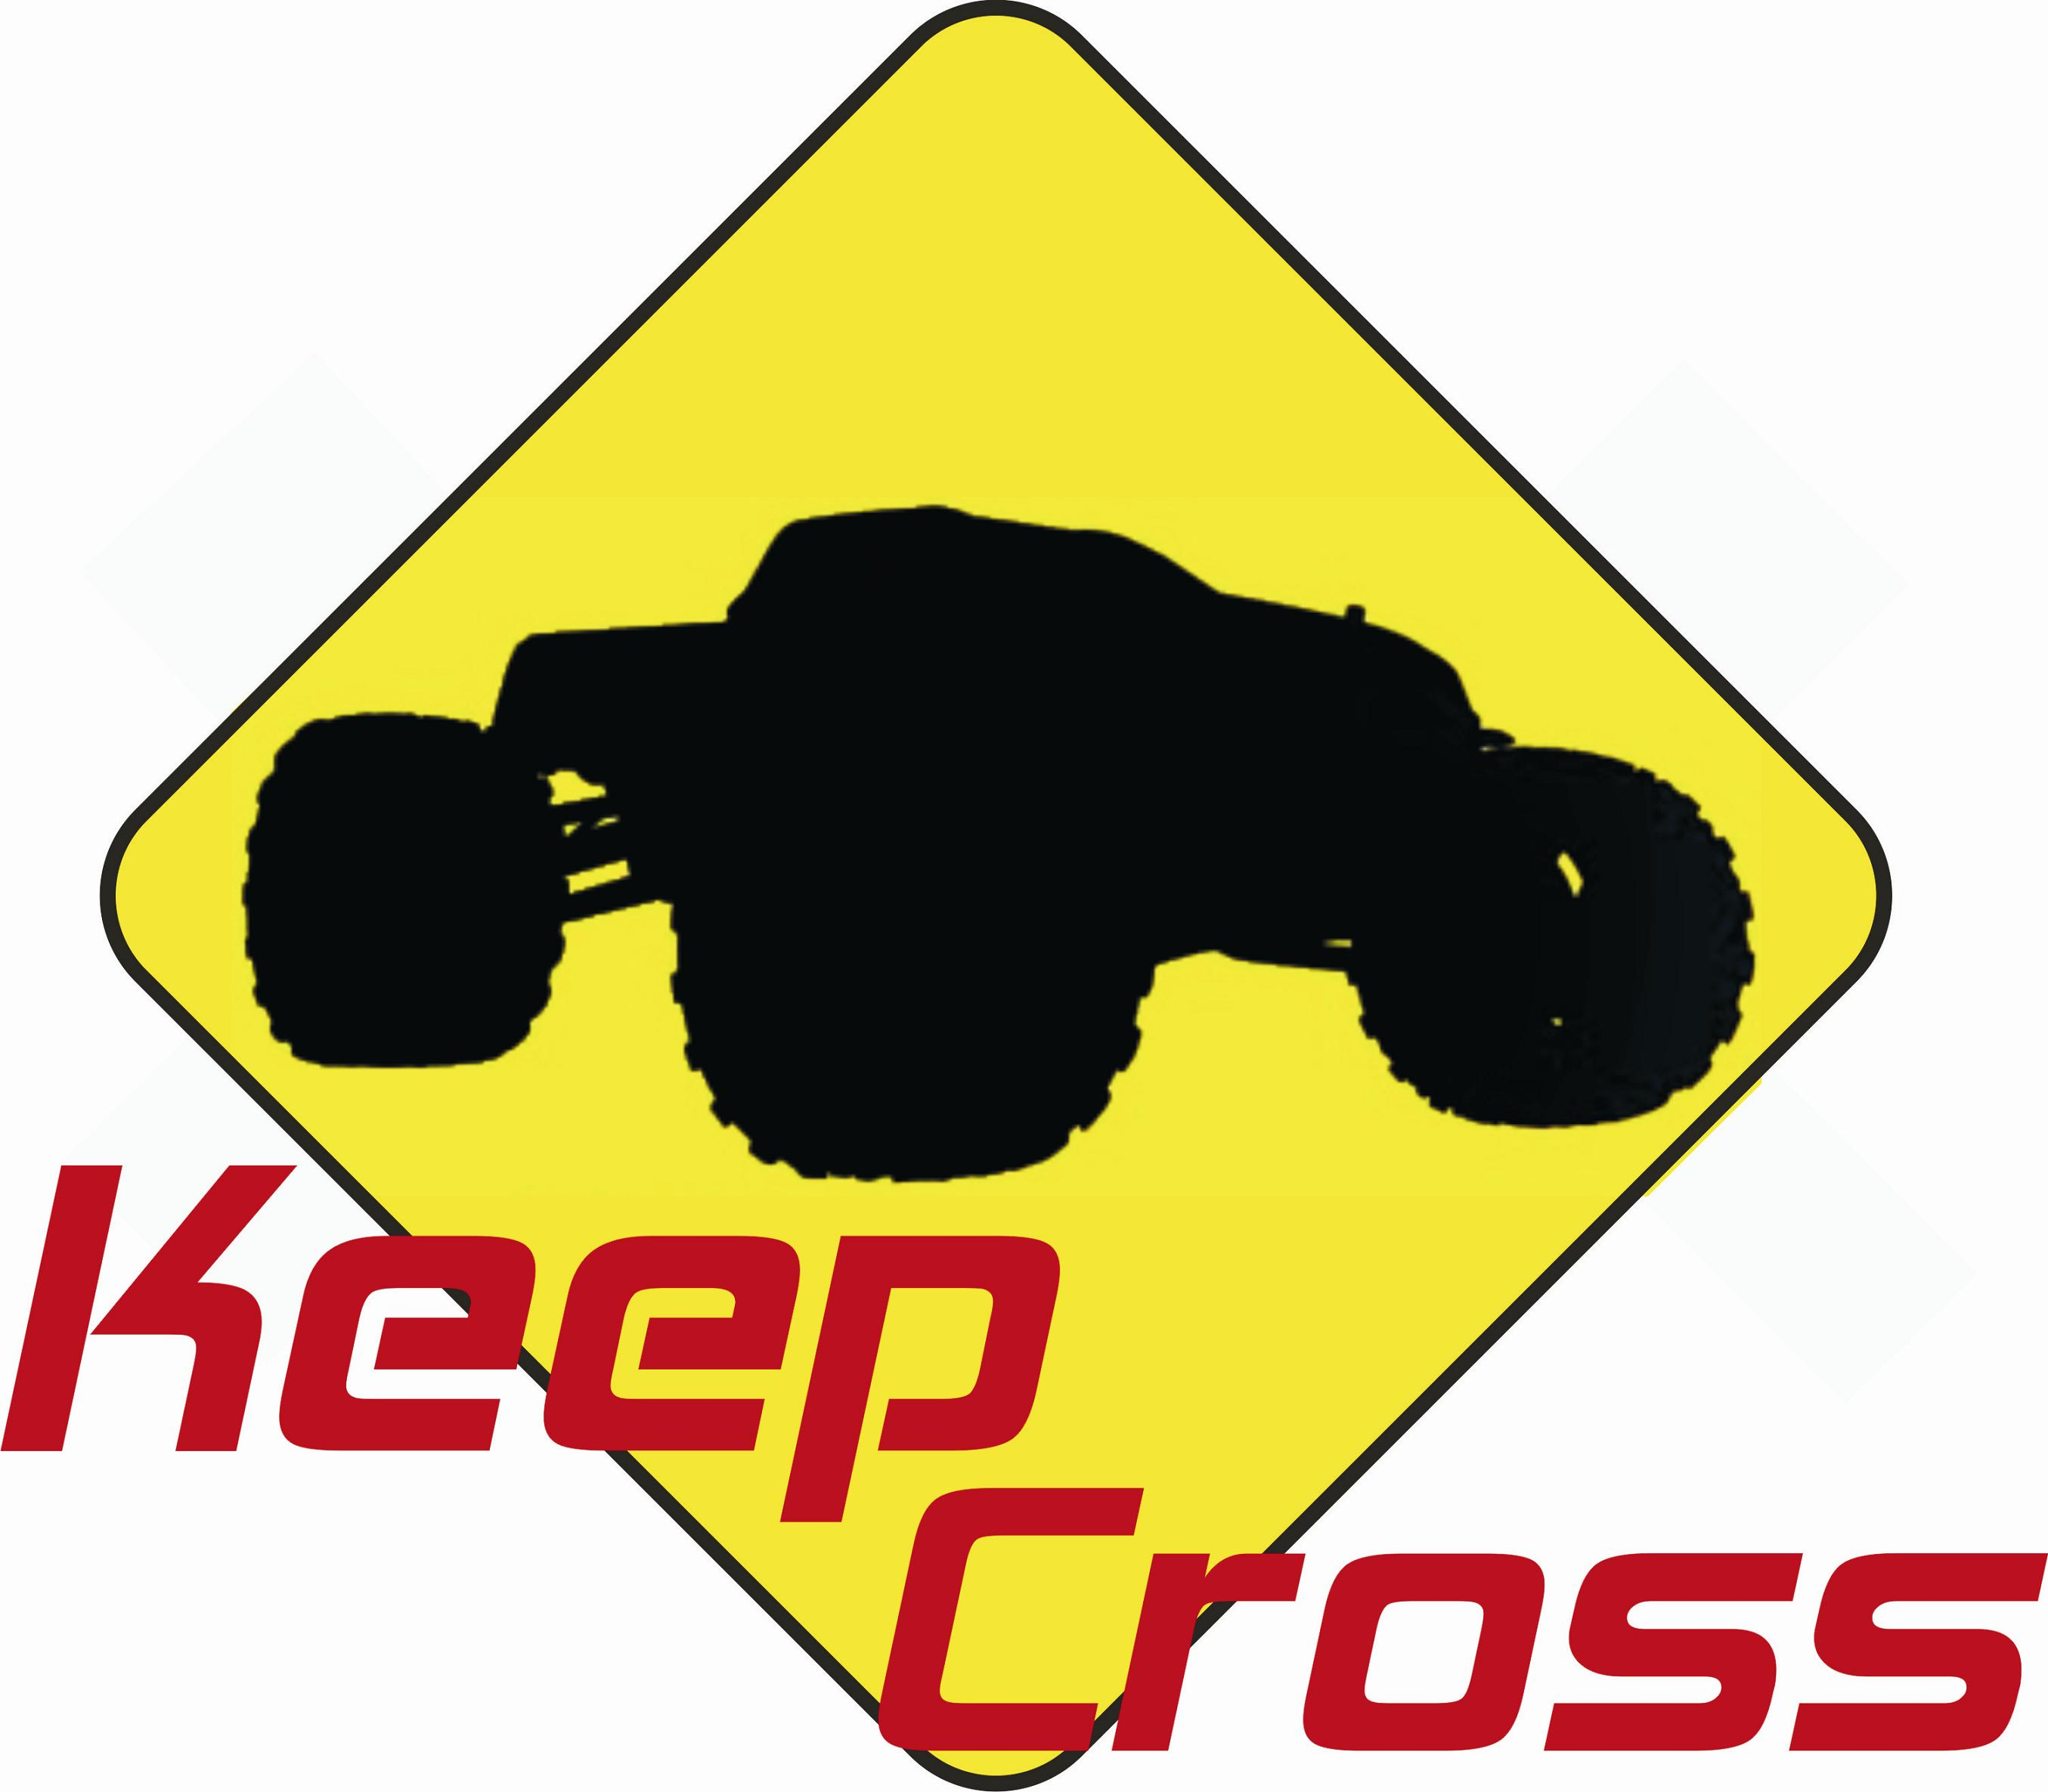 KEEP CROSS